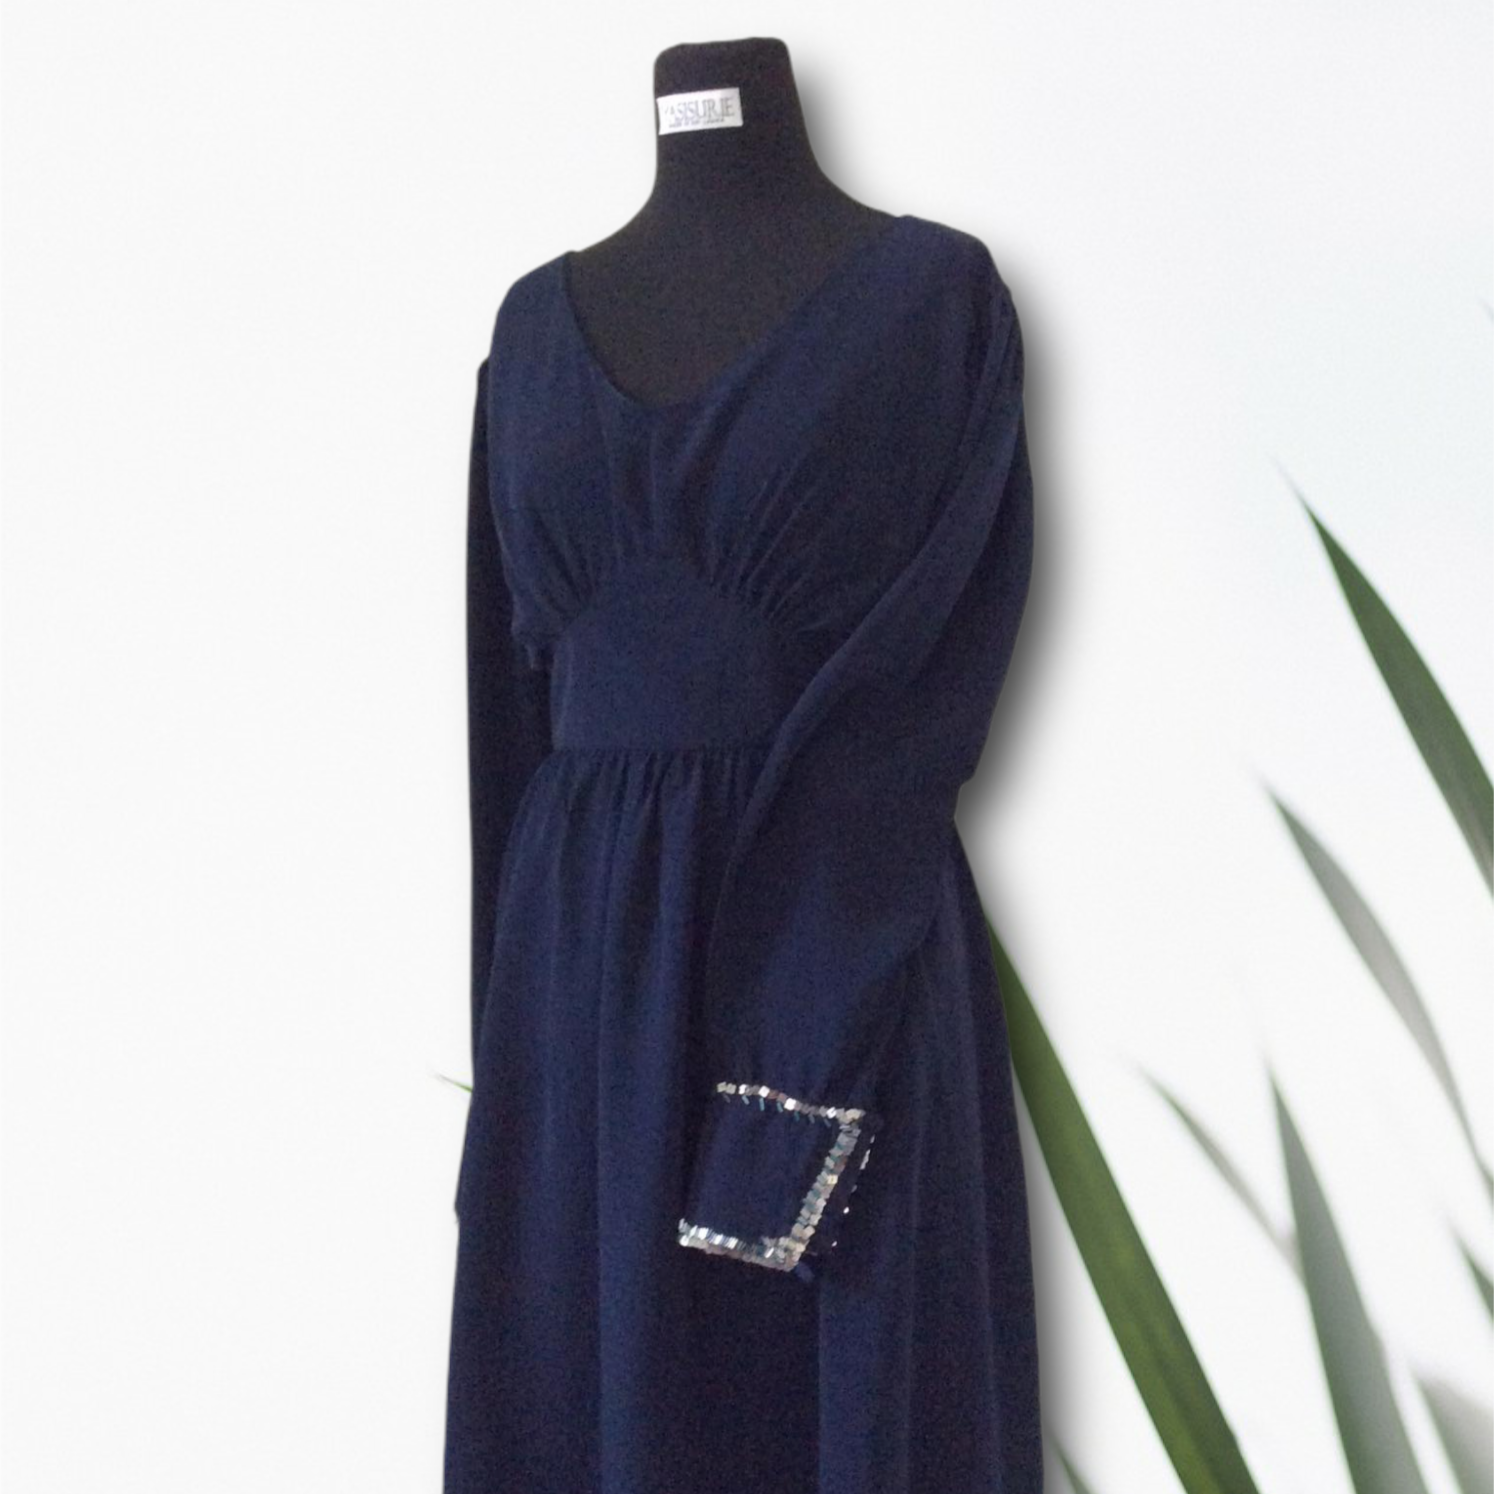 Blue fit and flare dress with embellished long sleeves